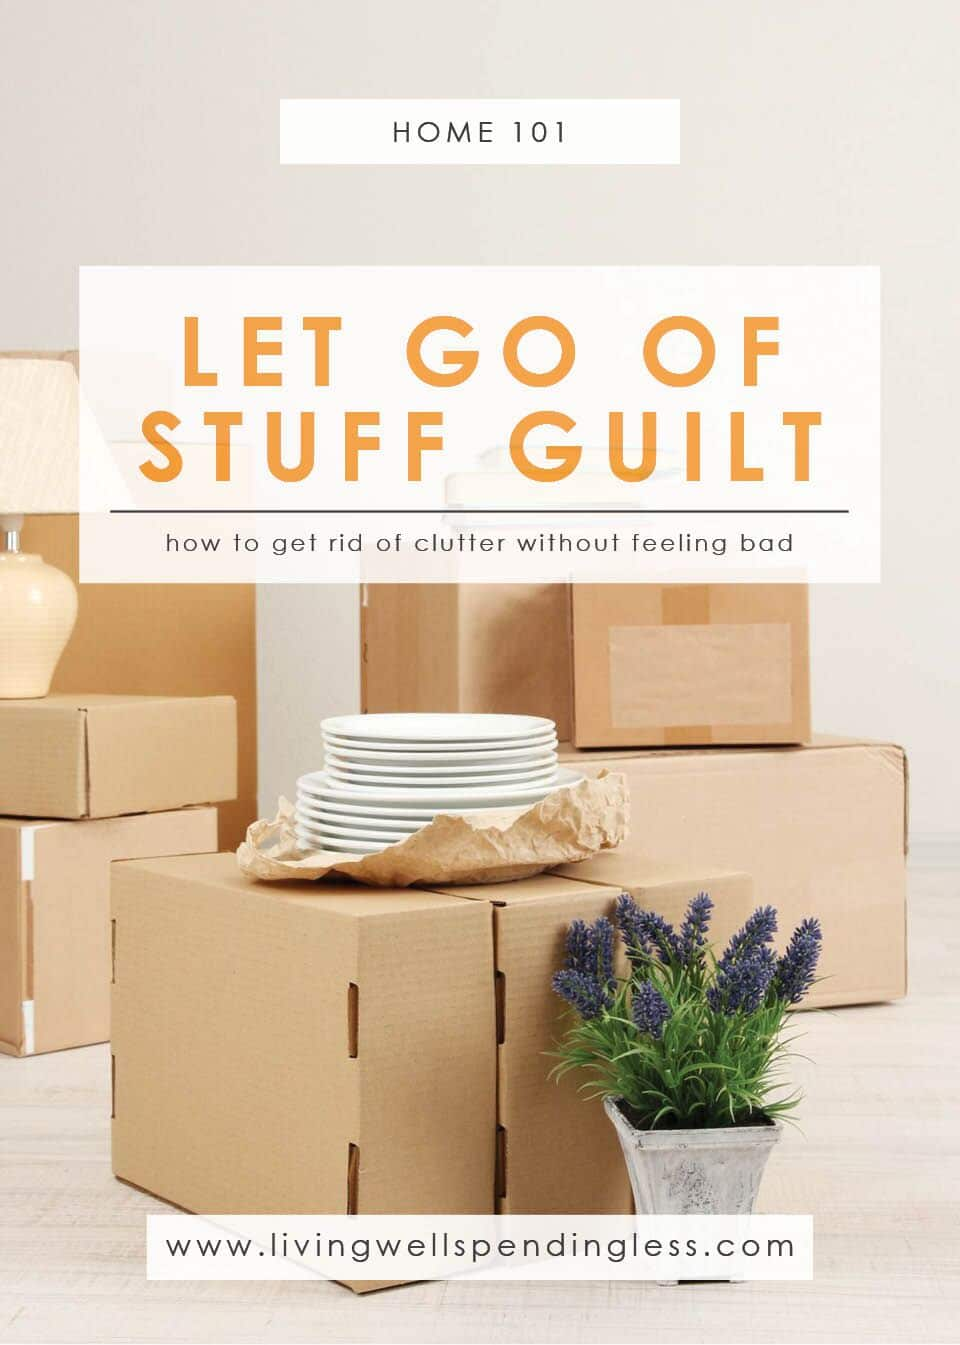 Let Go of Stuff Guilt: How to Get Rid of Clutter Without Feeling Bad